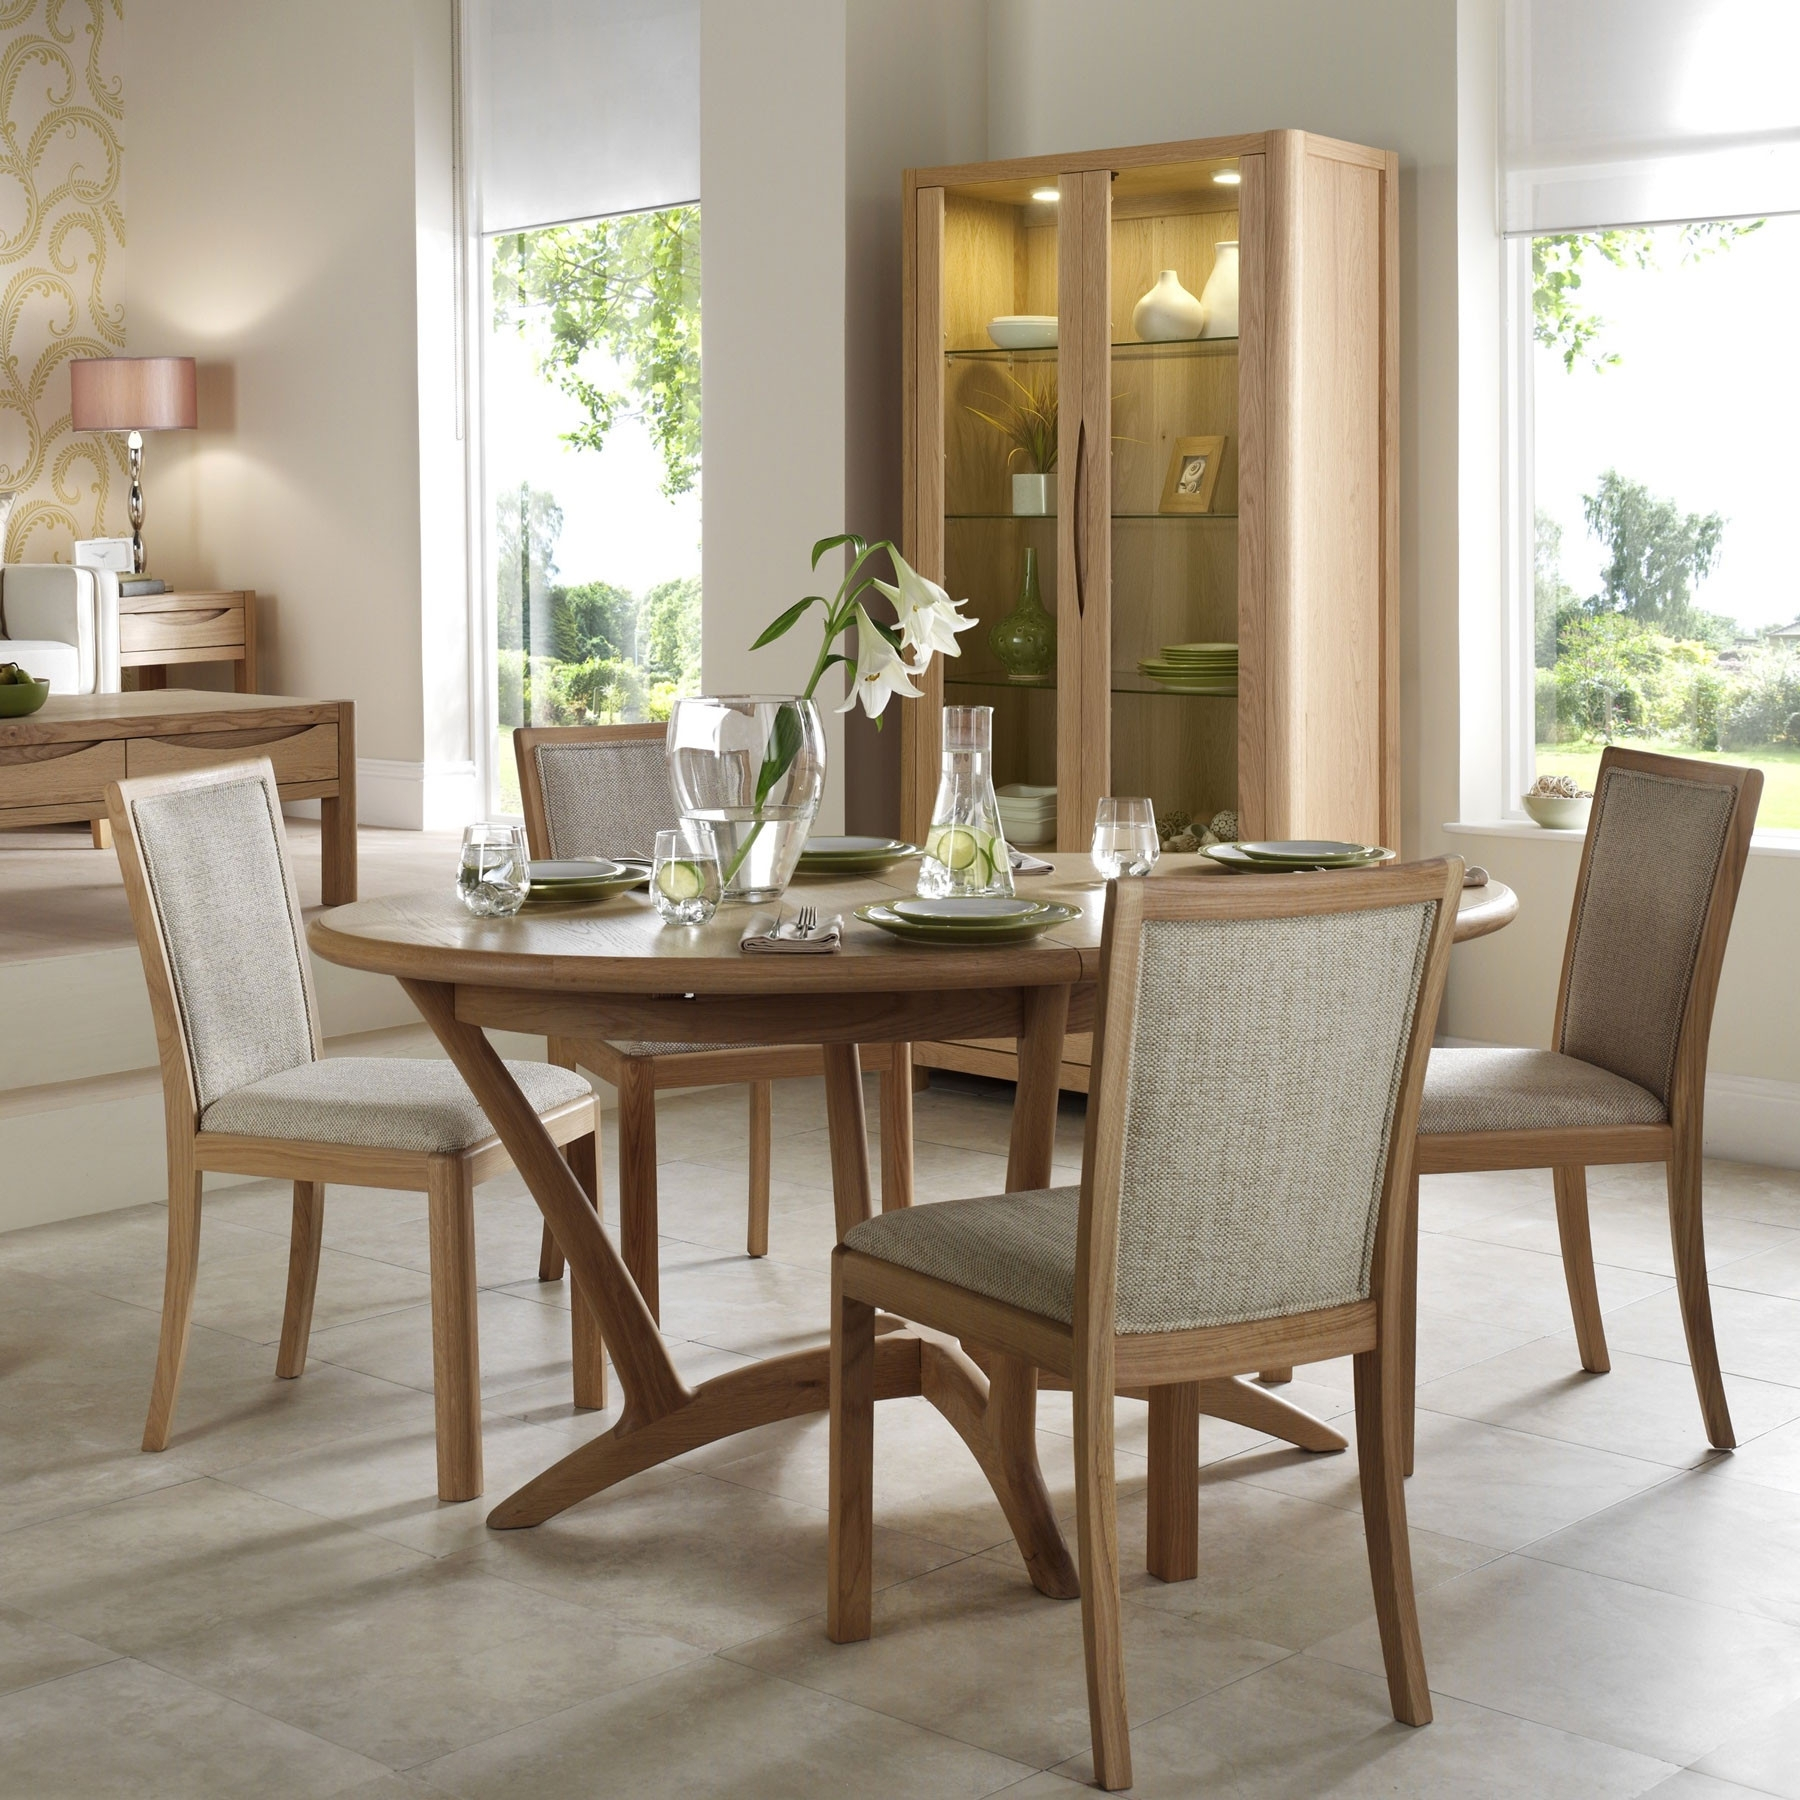 Latest Dining Tables And Fabric Chairs In Oslo Light Oak Oval Extending 210Cm Dining Table & 6 Fabric Chairs (View 13 of 25)